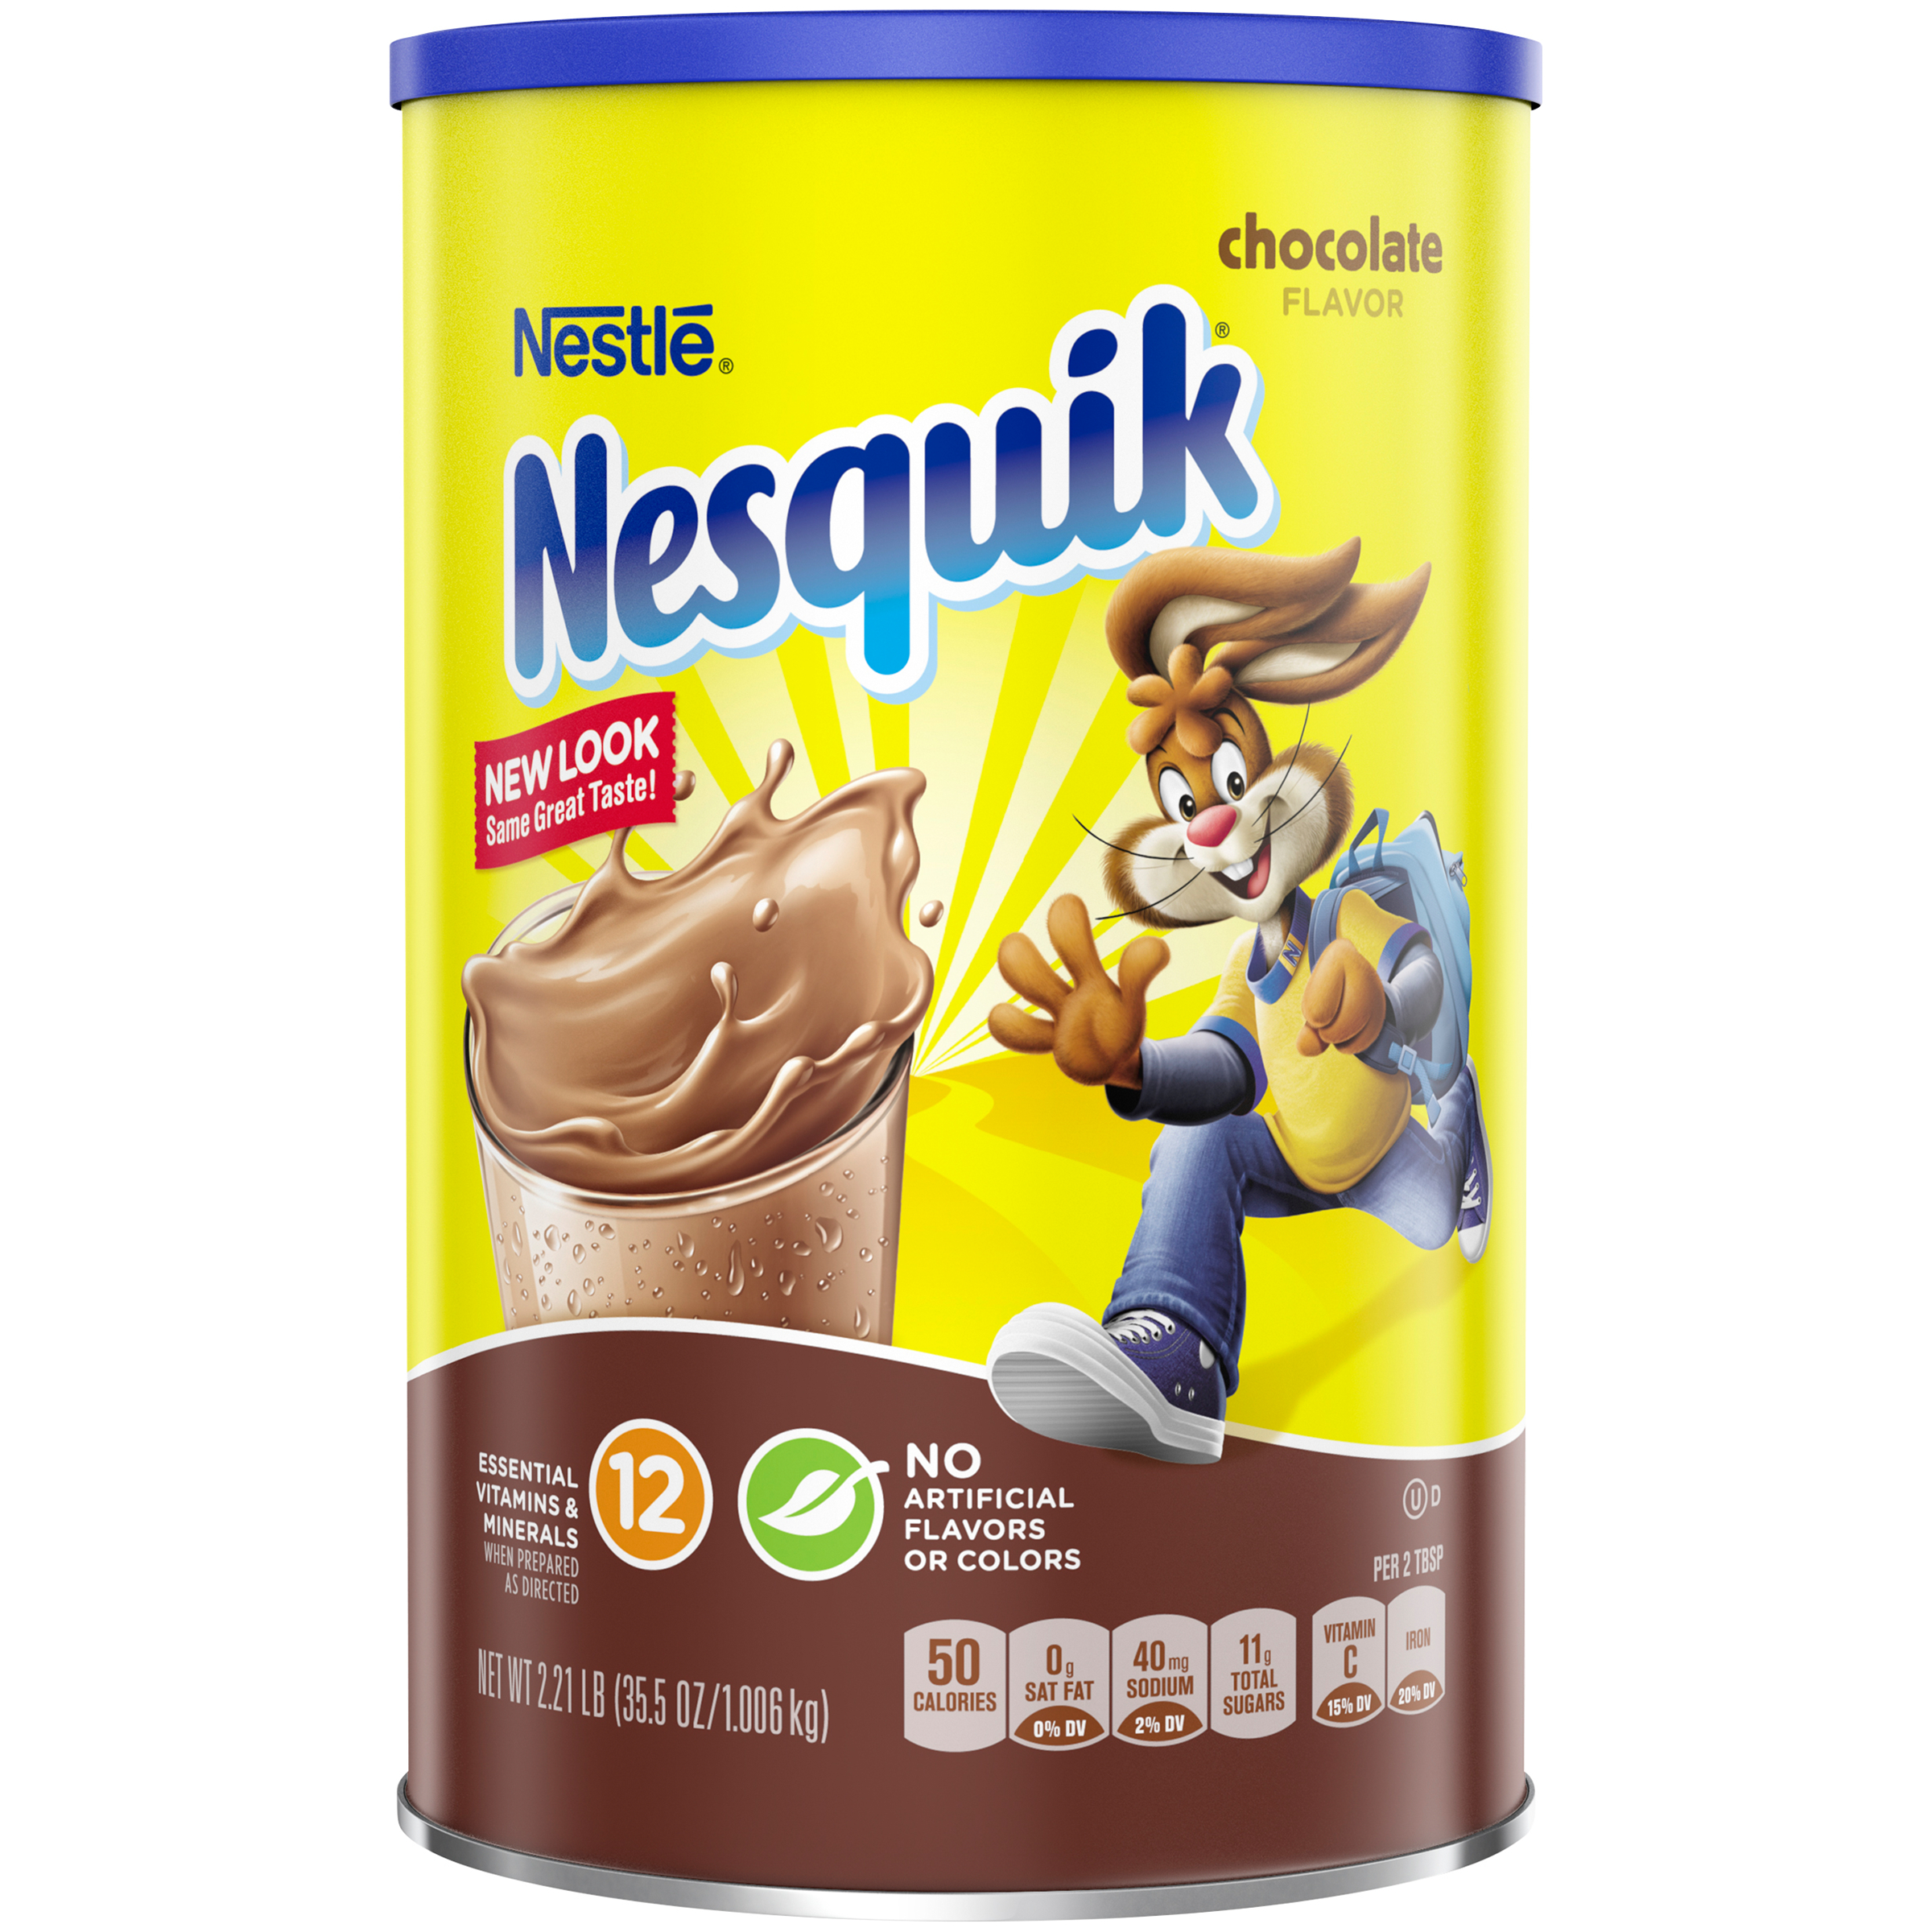 NESTLE NESQUIK Chocolate Flavored Powder 2.21 lb. Canister